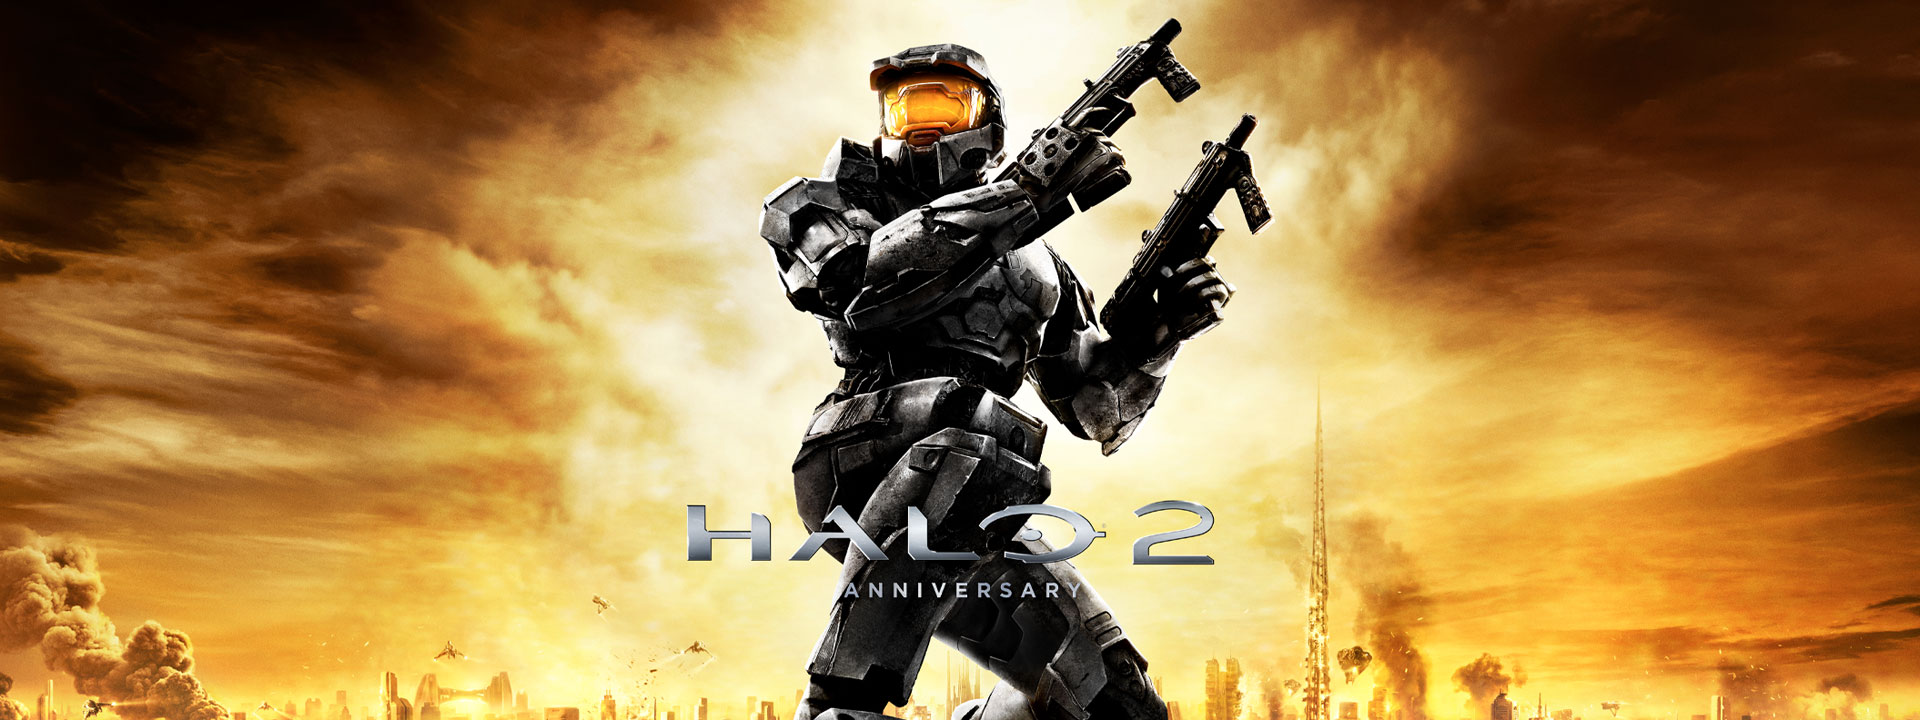 Halo 2 Anniversary, Master Chief holds two guns on top of a building, cityscape background